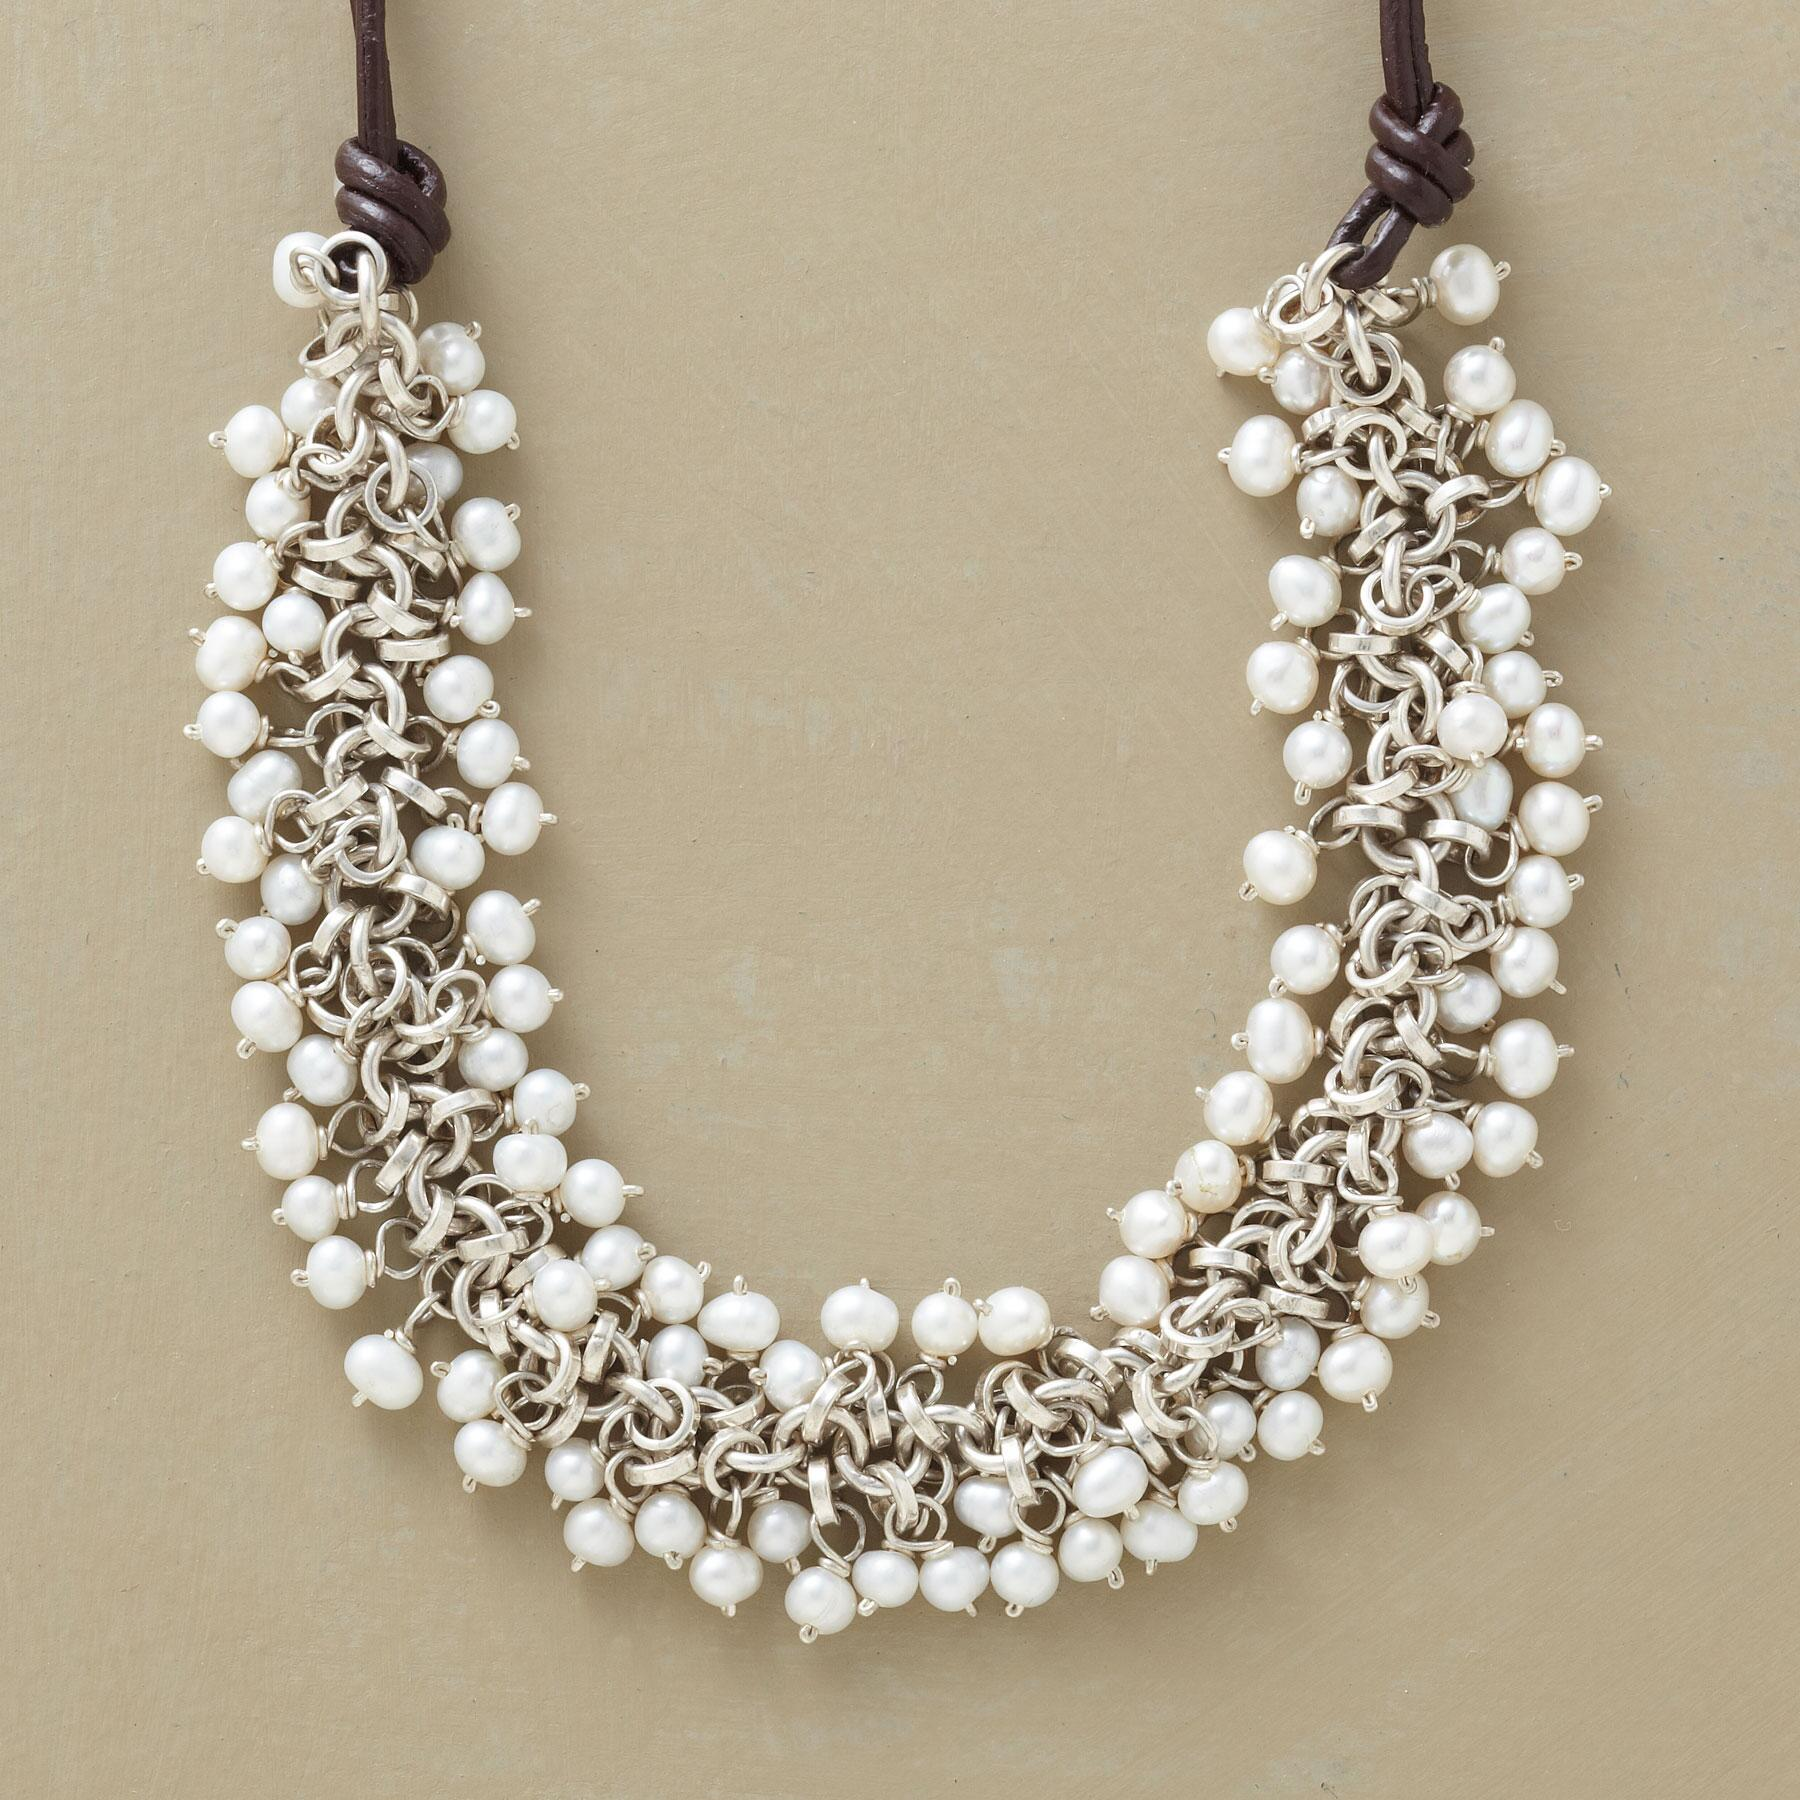 PRESENT-DAY PEARL NECKLACE: View 1